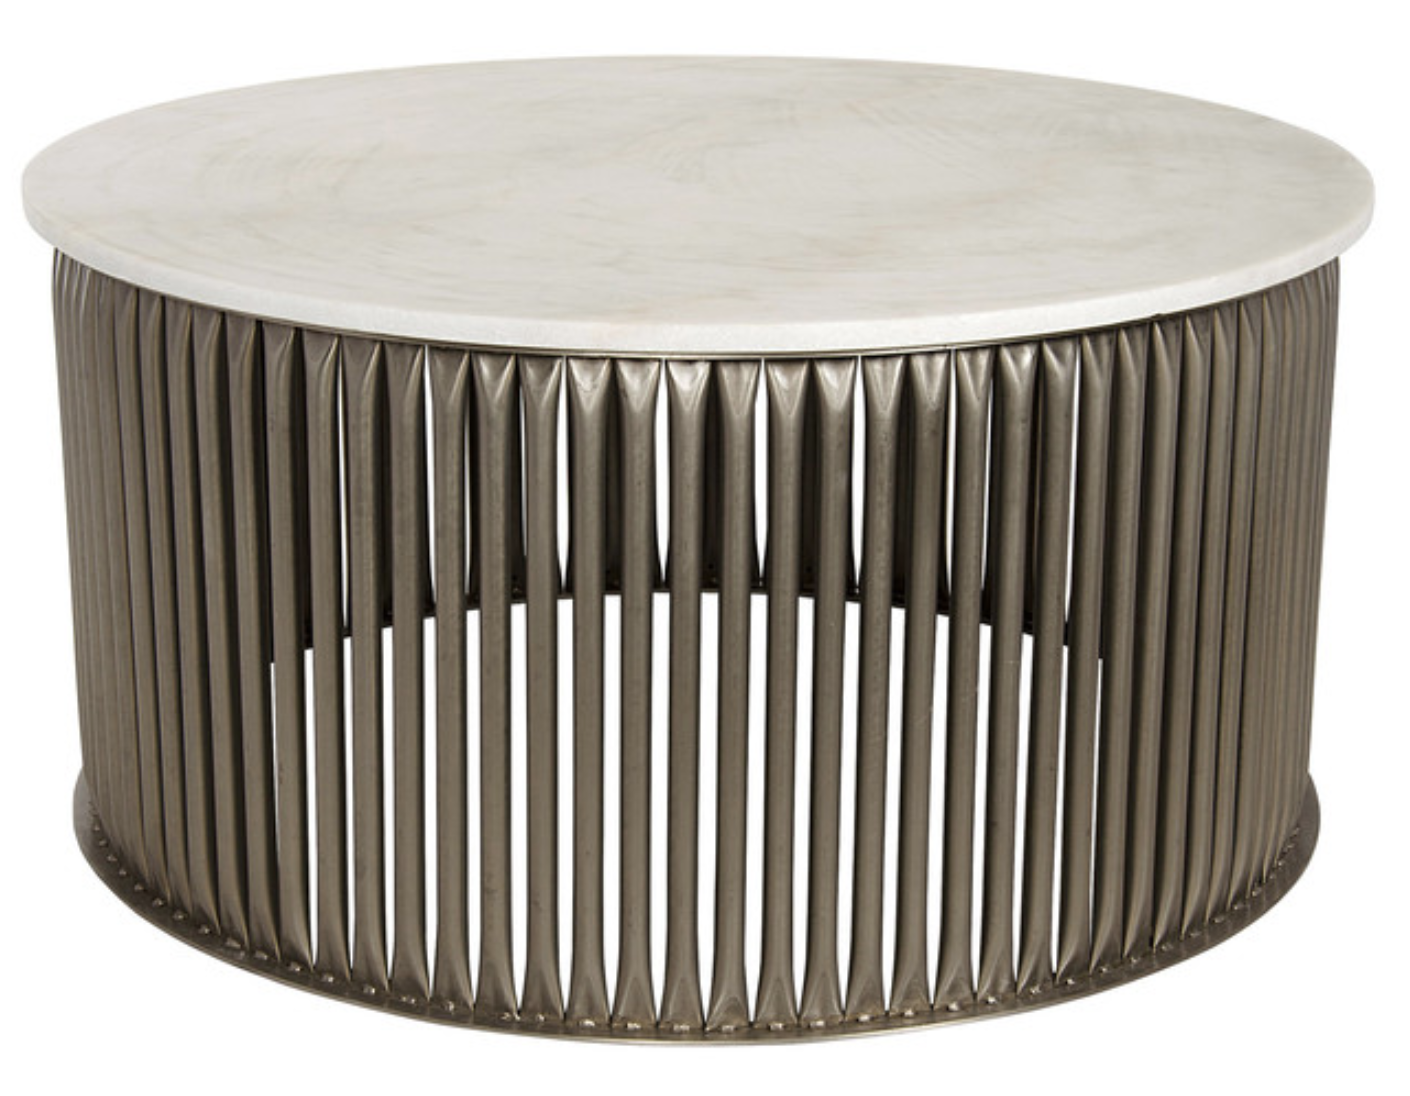 opher-industrial-loft-antique-silver-round-stone-coffee-table